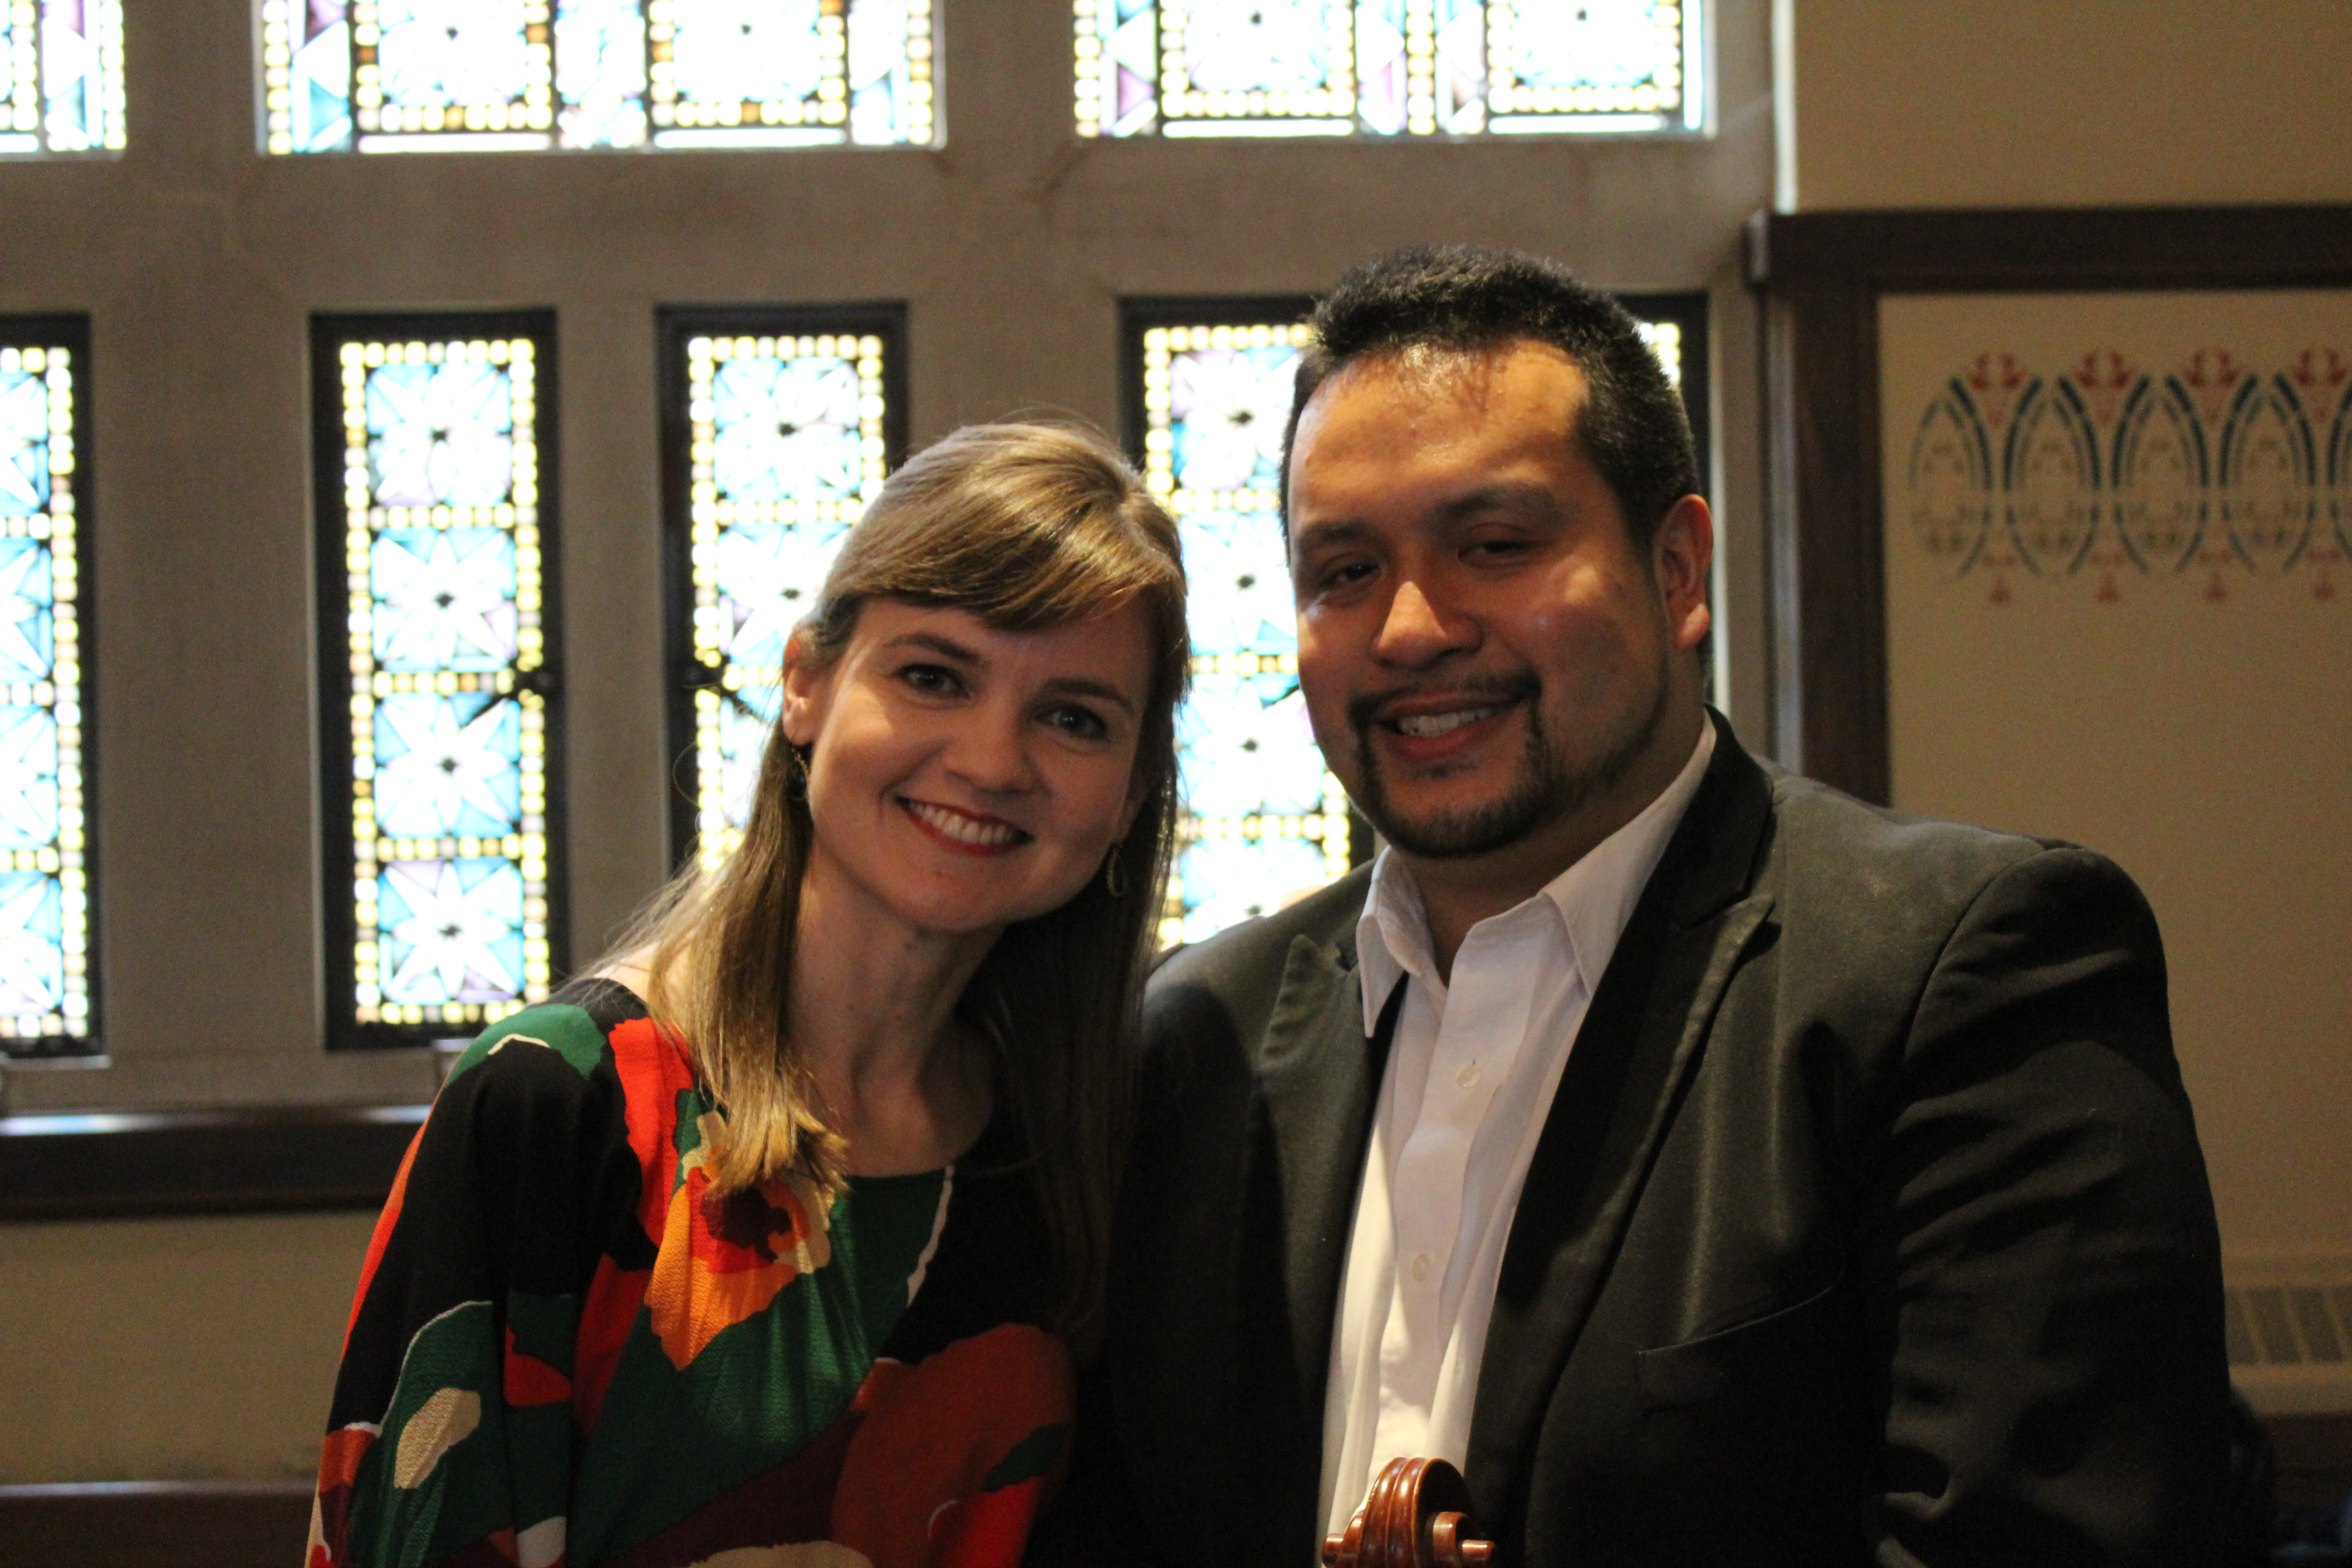 Kate Carter and Victor Sotelo, April 2017 IMG_0133